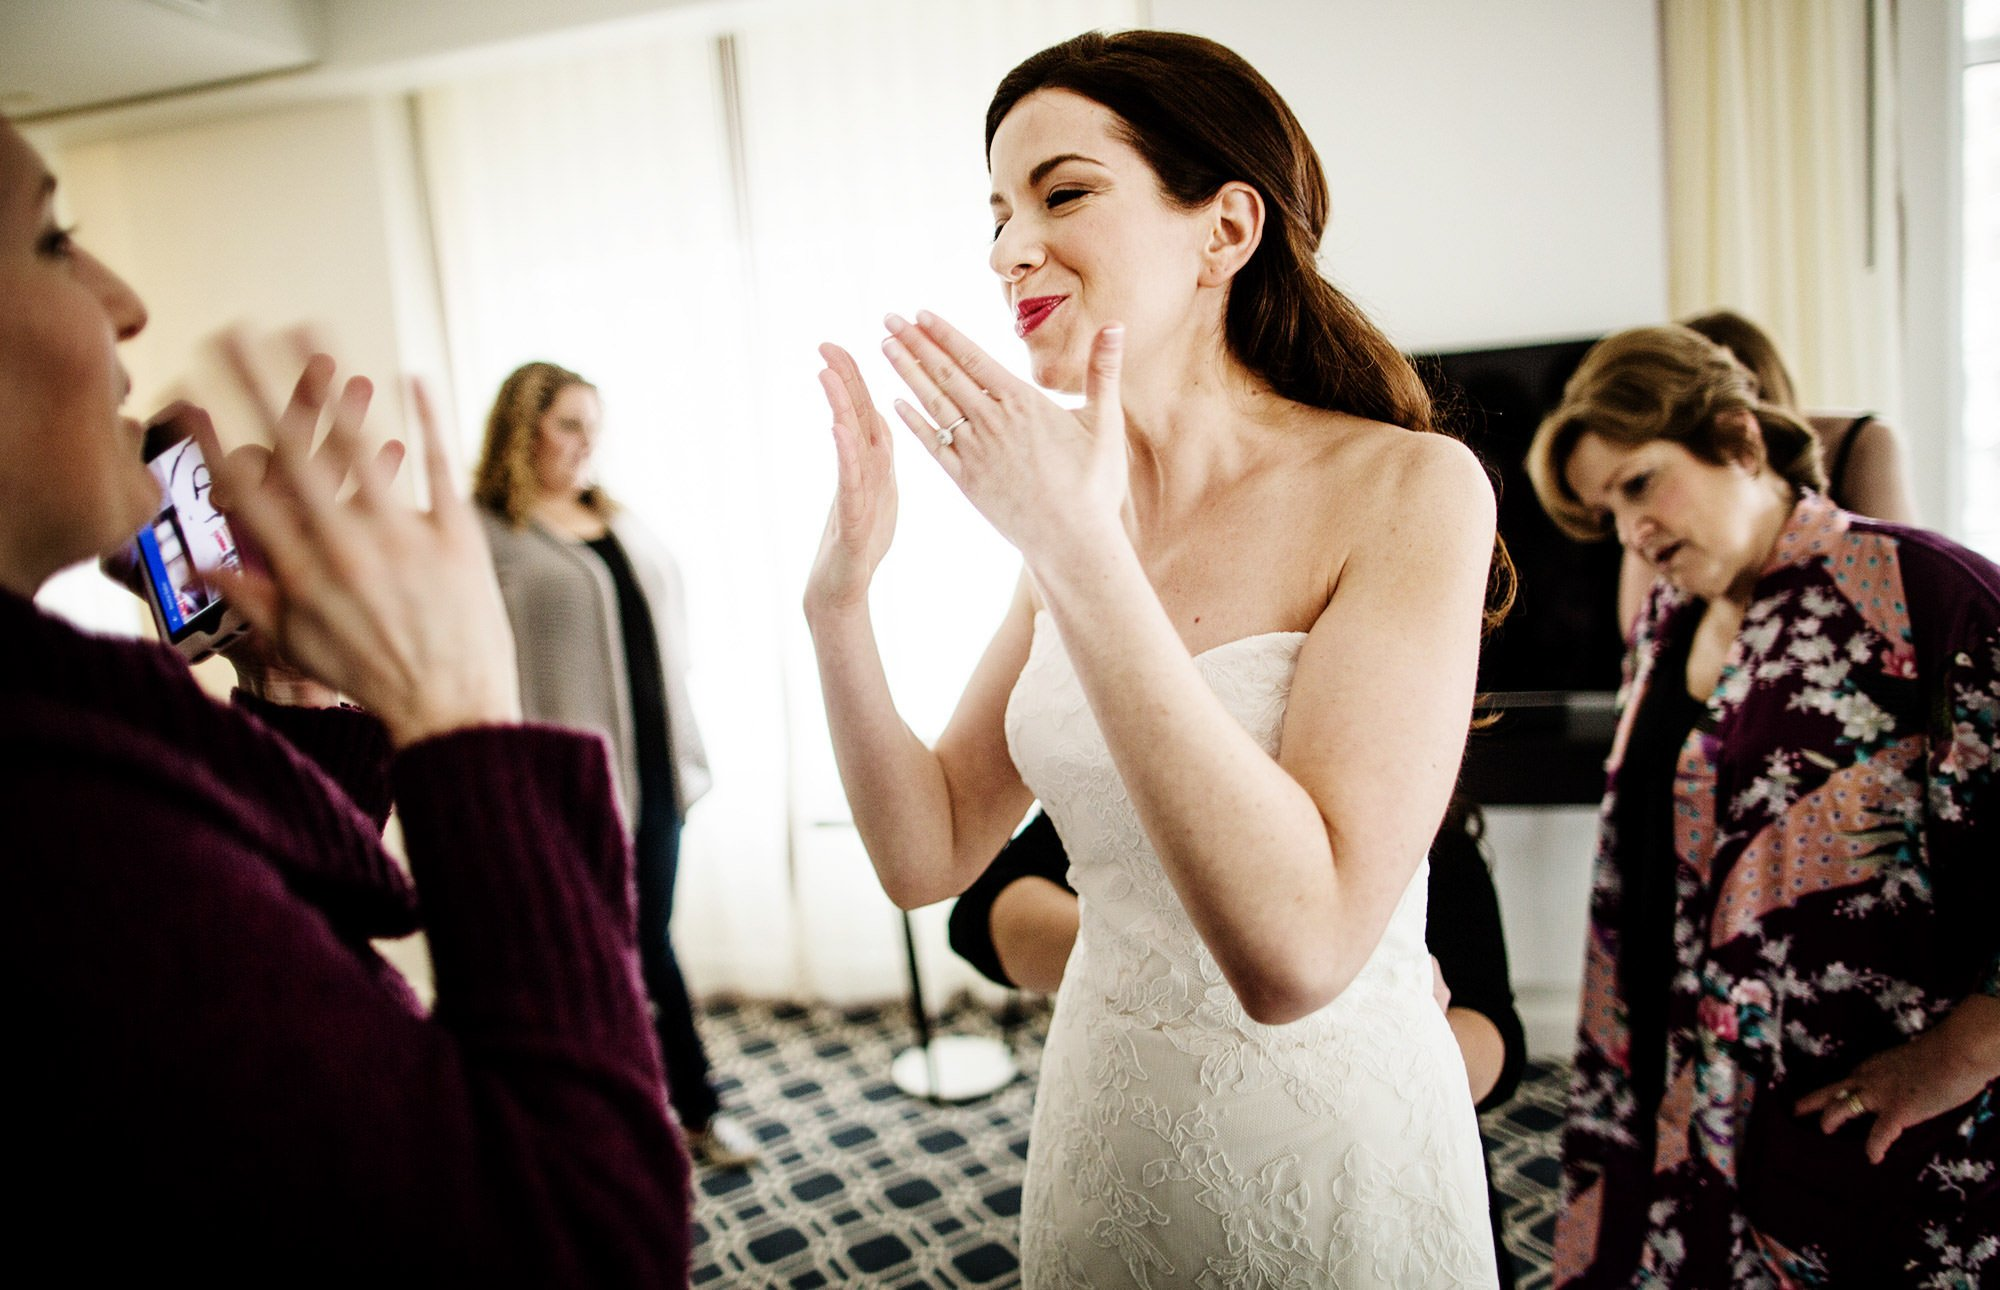 The bride blows kisses at her bridesmaids at the Sofitel in Washington, DC prior to the NMWA wedding.